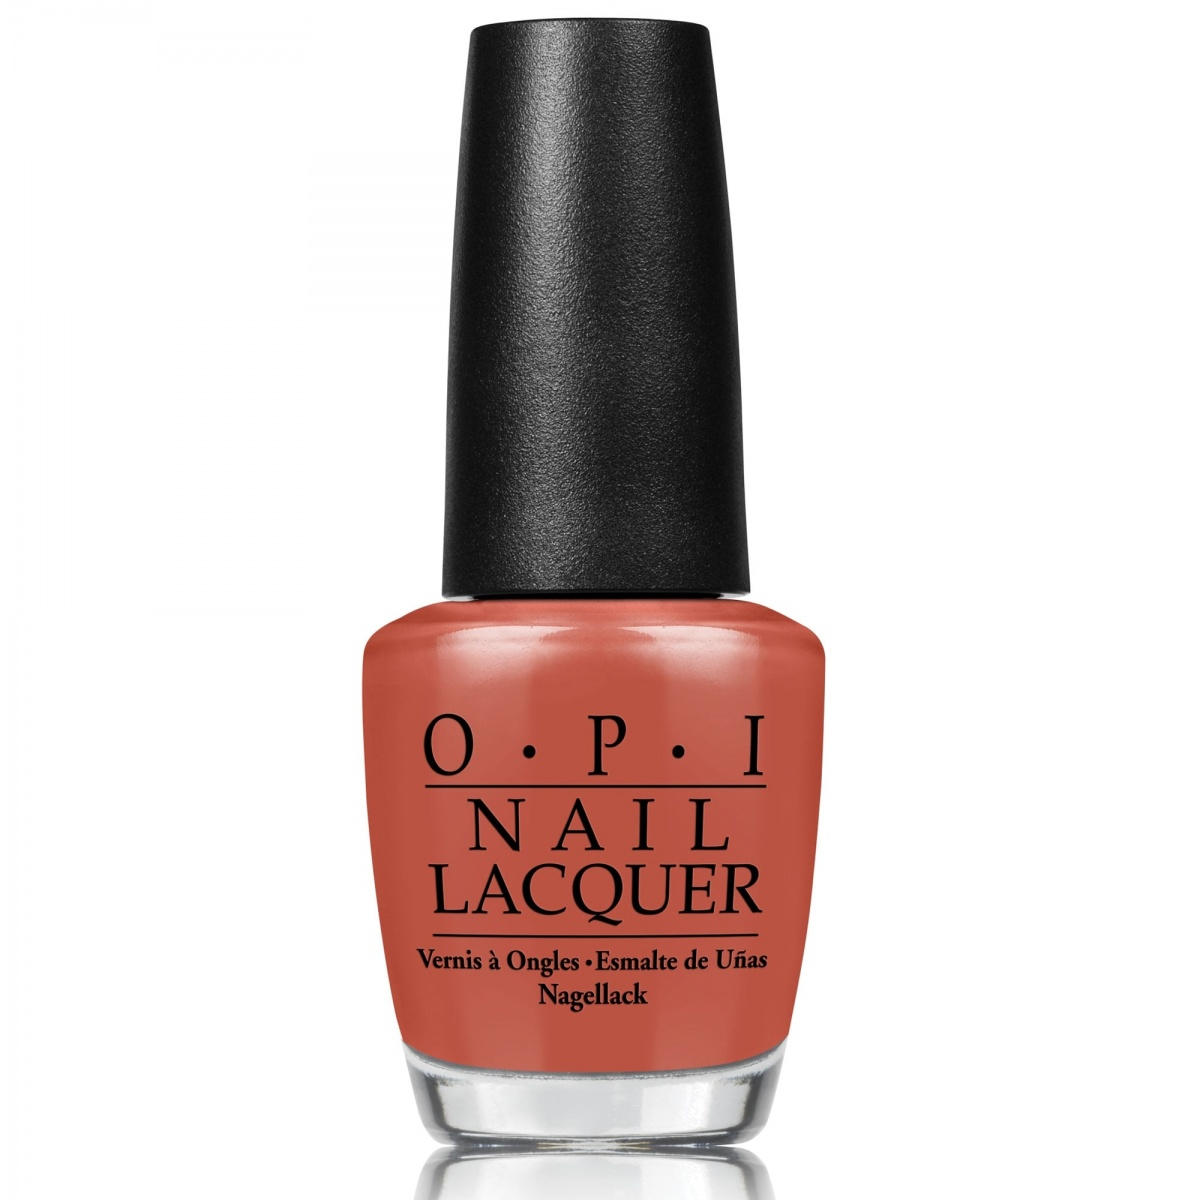 opi-washington-dc-nail-polish-collection-2016-yank-my-doodle-15ml-p18114-78821_zoom